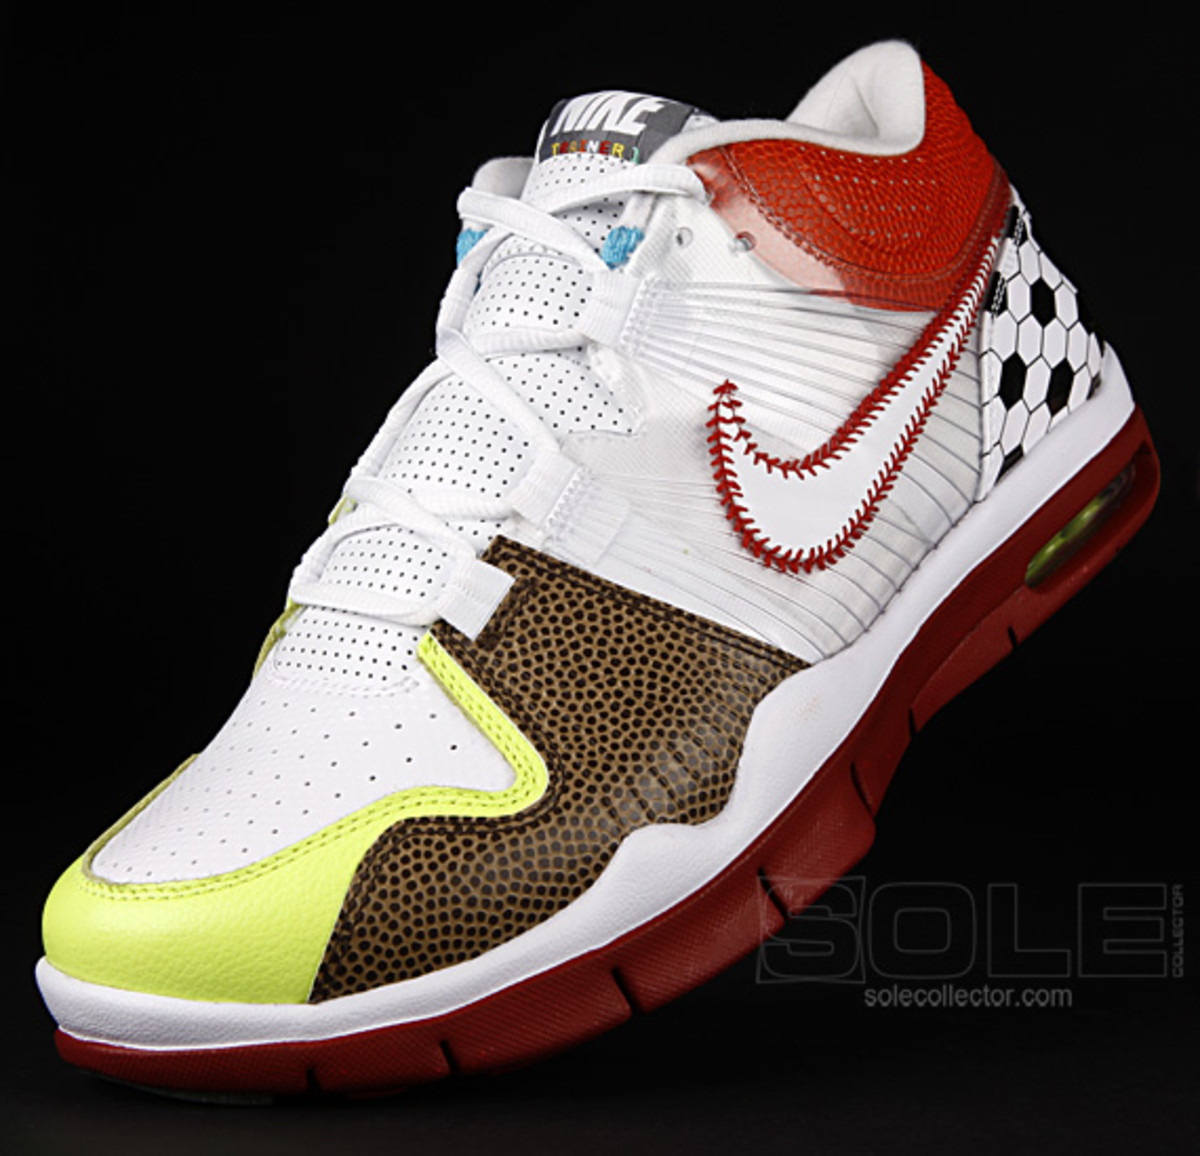 nike-trainer-1-what-the-all-sport-01